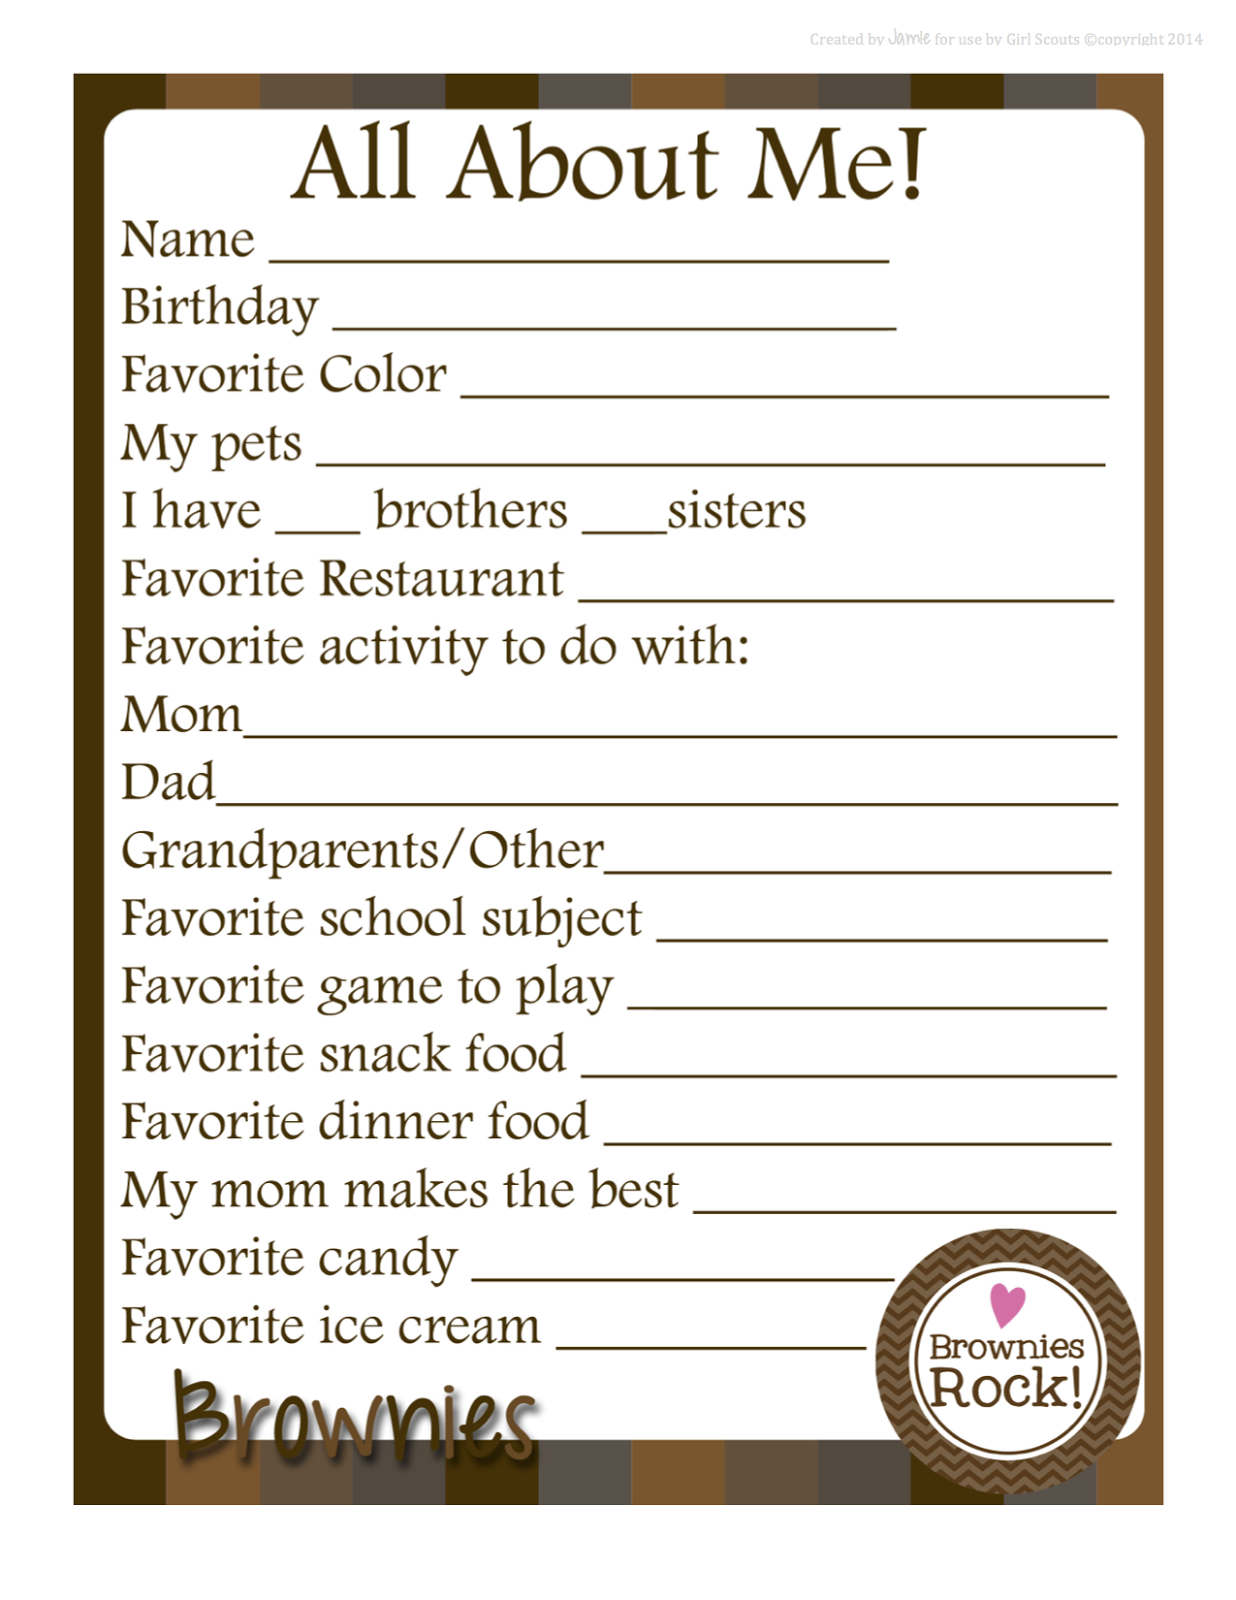 My Fashionable Designs Girl Scouts About Me Free Printable